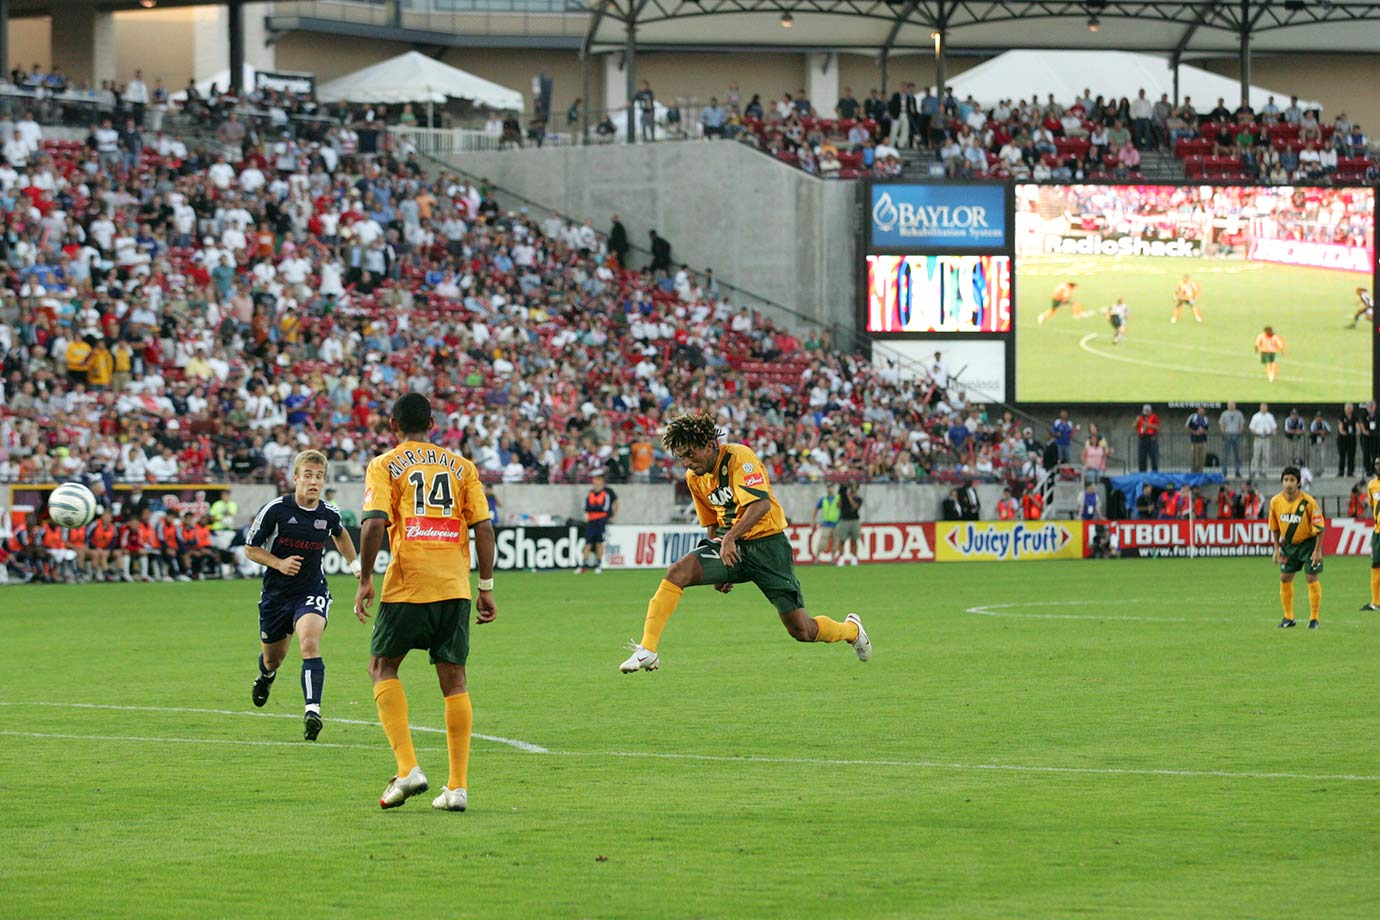 2005 — Los Angeles Galaxy (beat New England Revolution 1-0 in extra time)